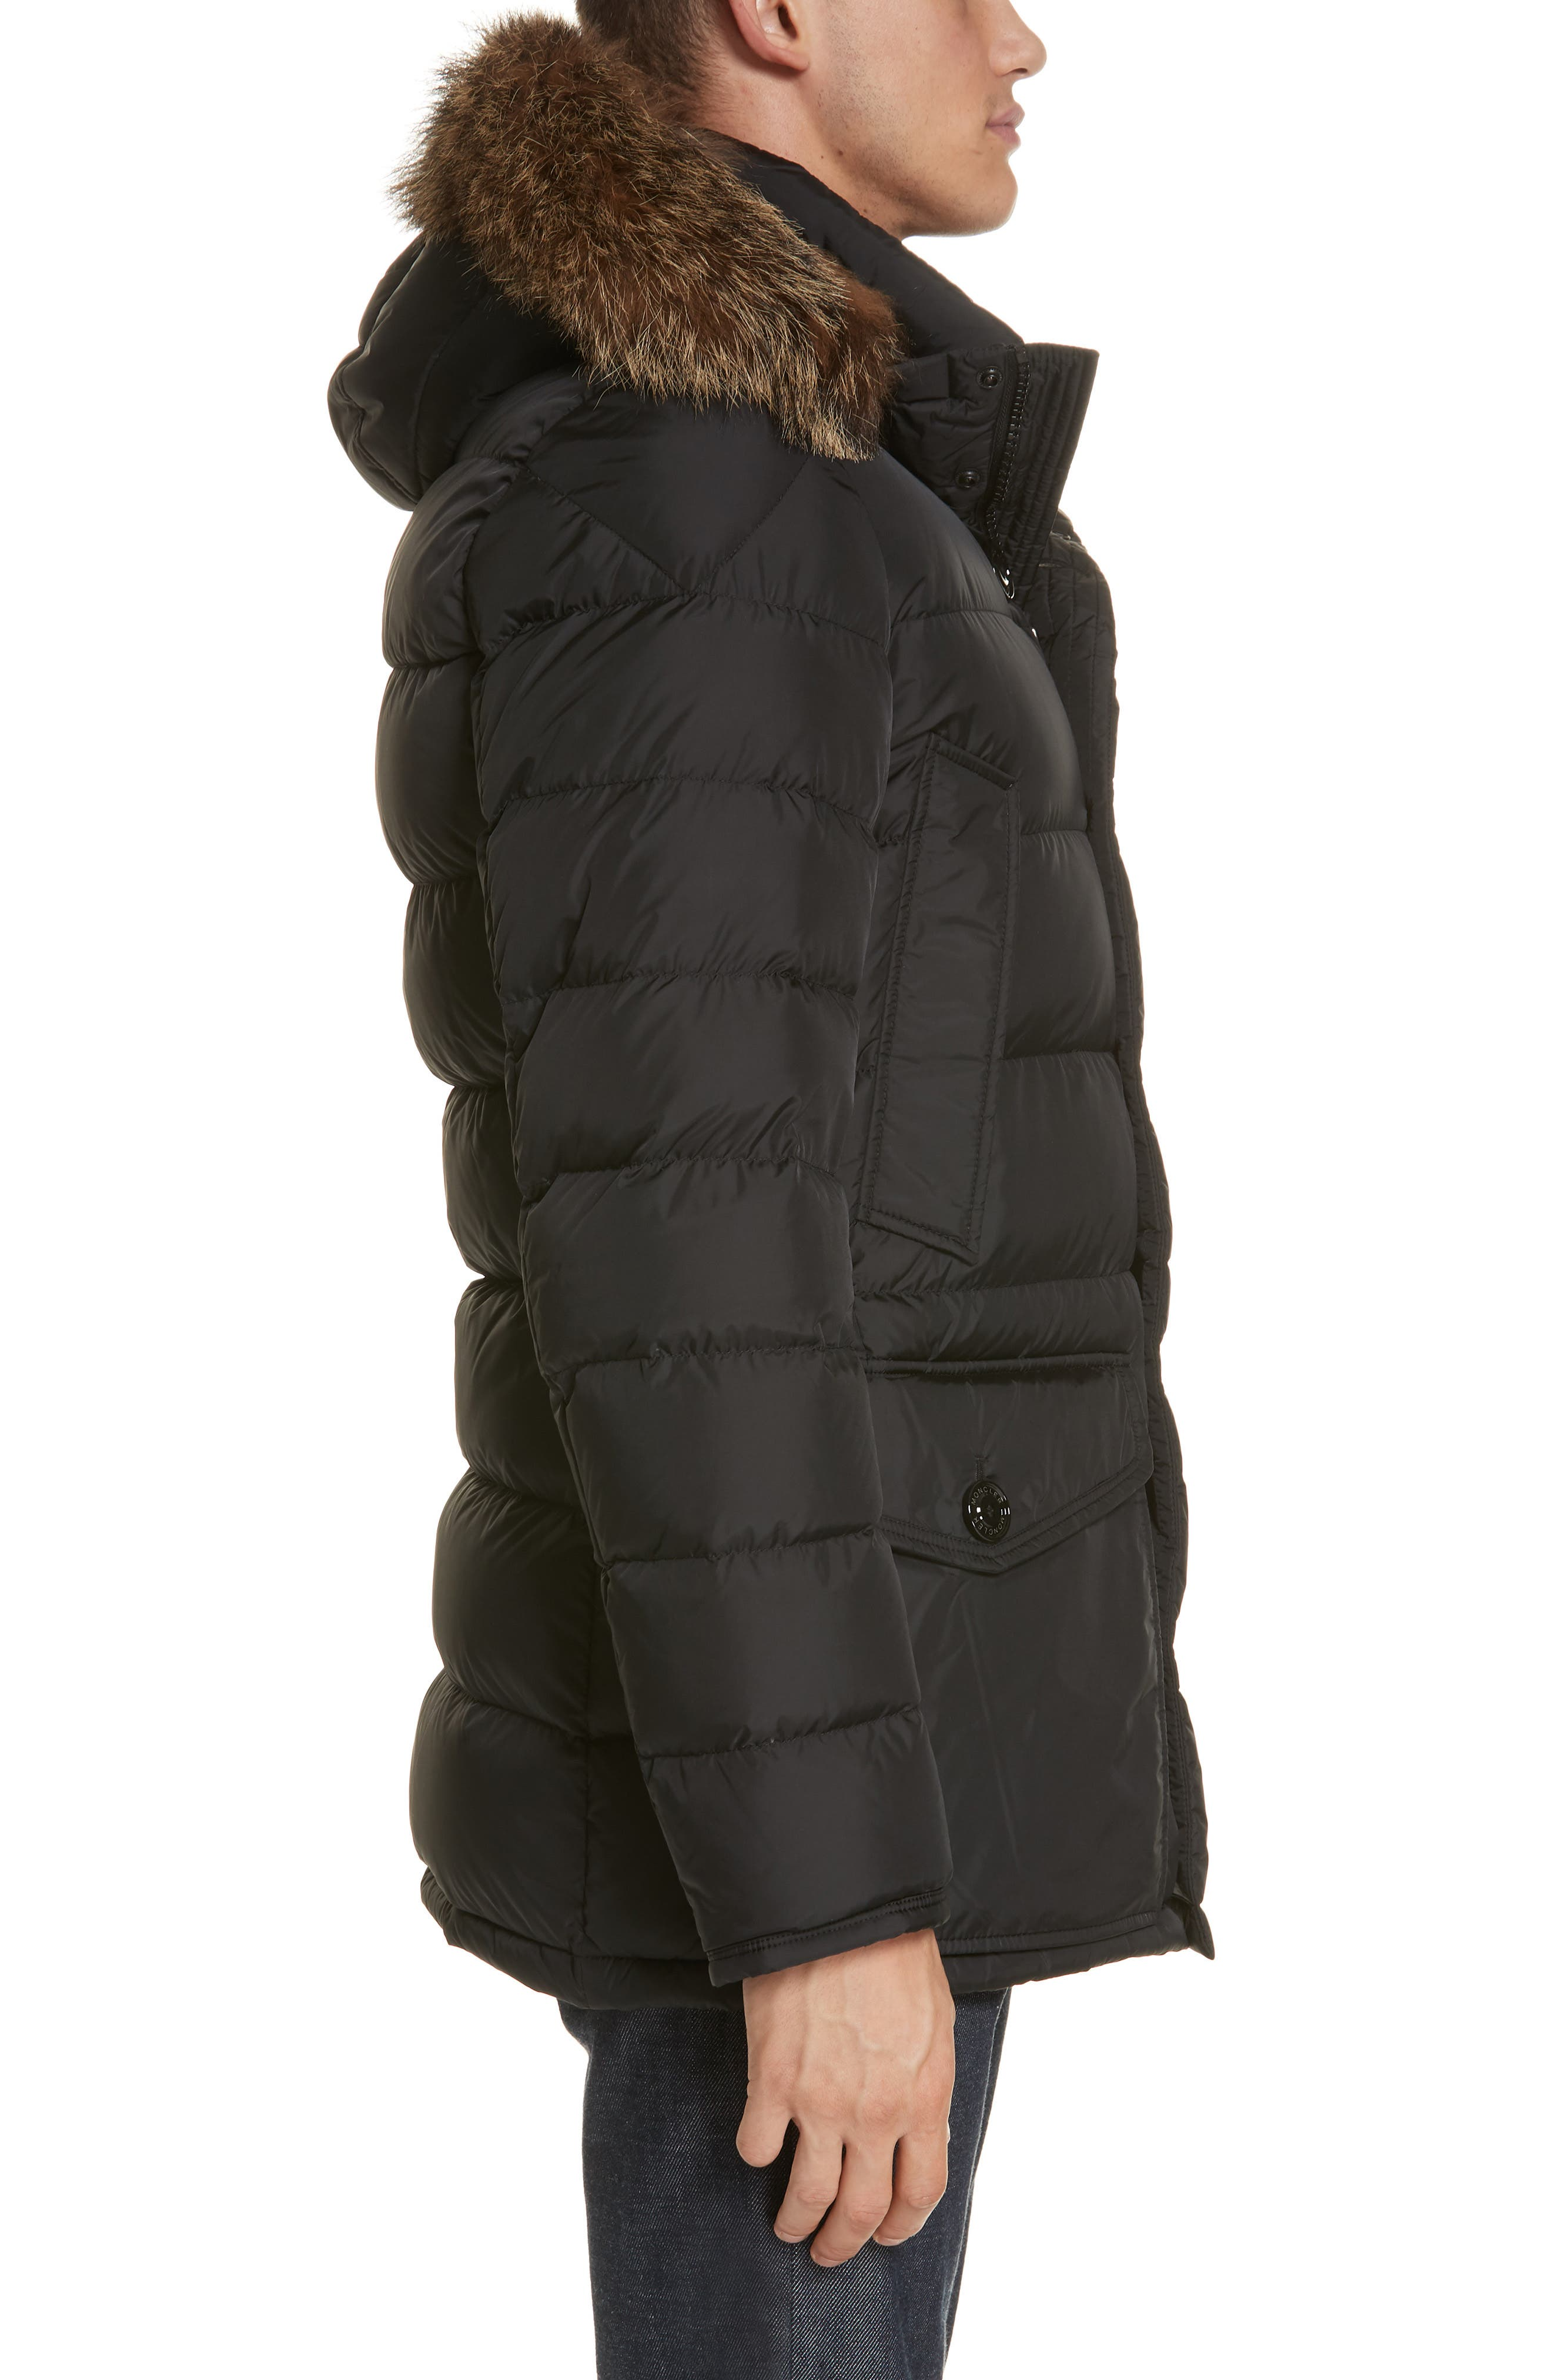 Cluny Giubbotto Down Parka with Genuine Coyote Fur Trim,                             Alternate thumbnail 3, color,                             001